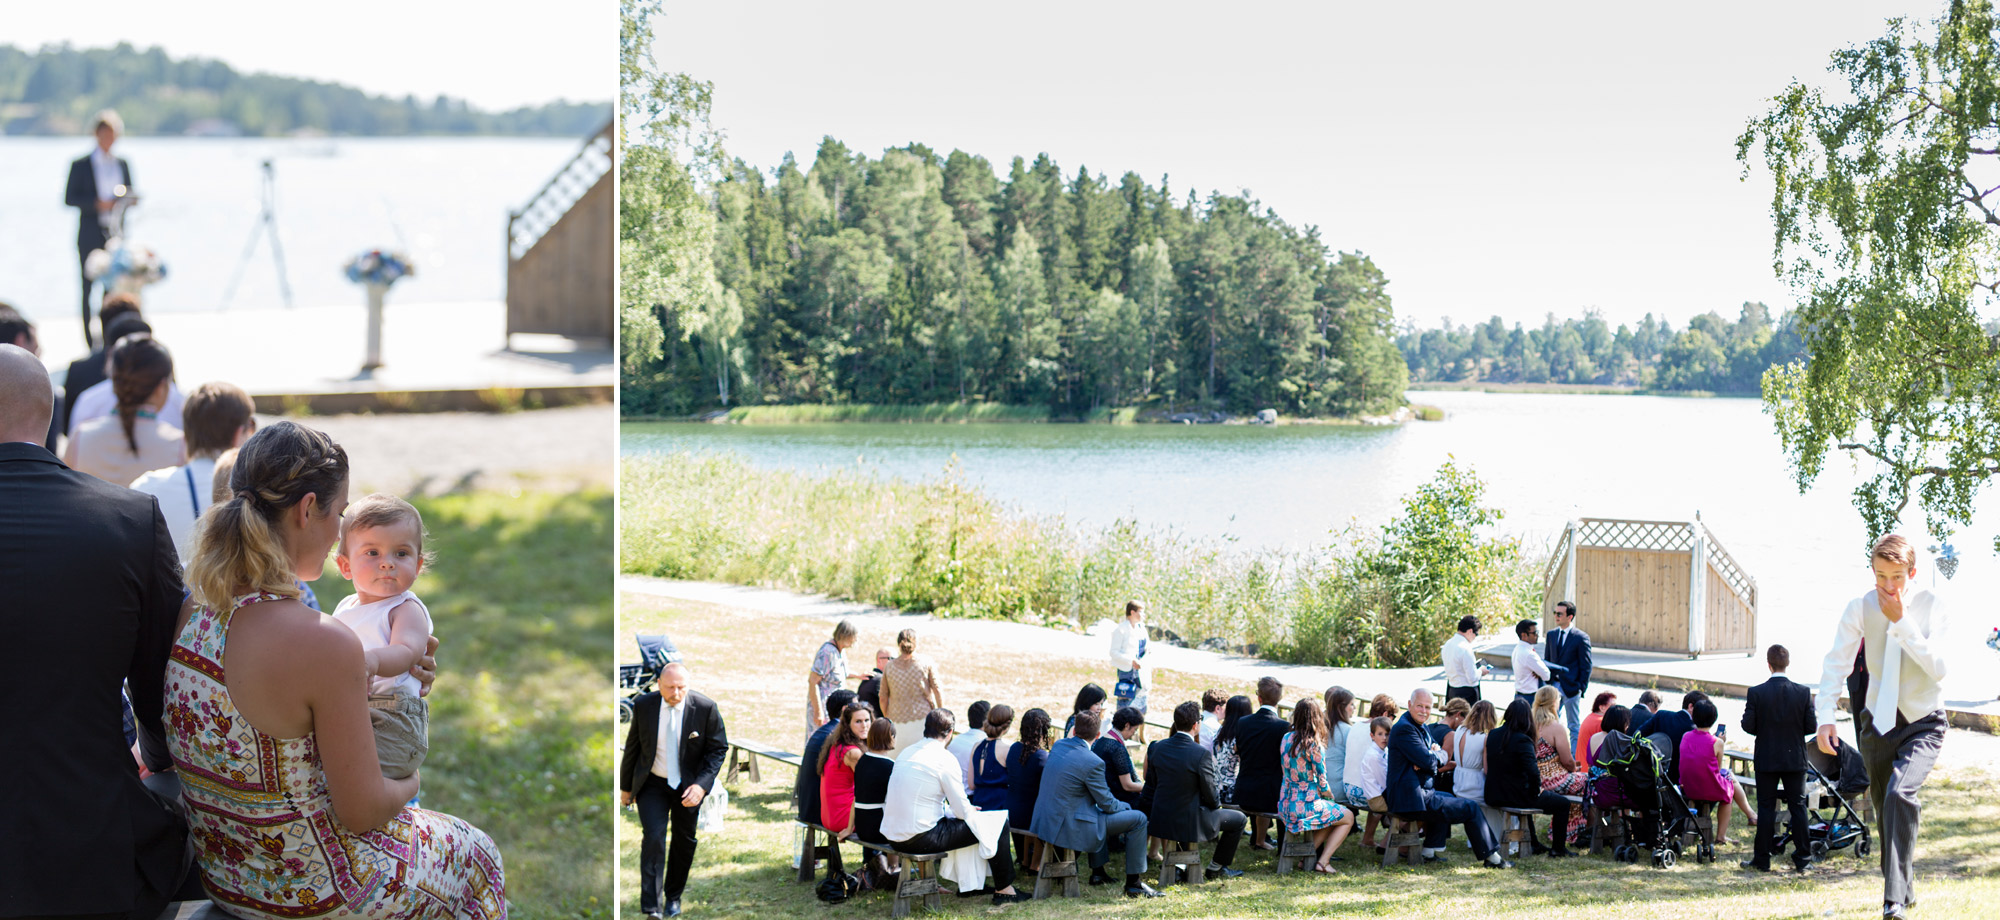 guests at wedding in marholmen sweden